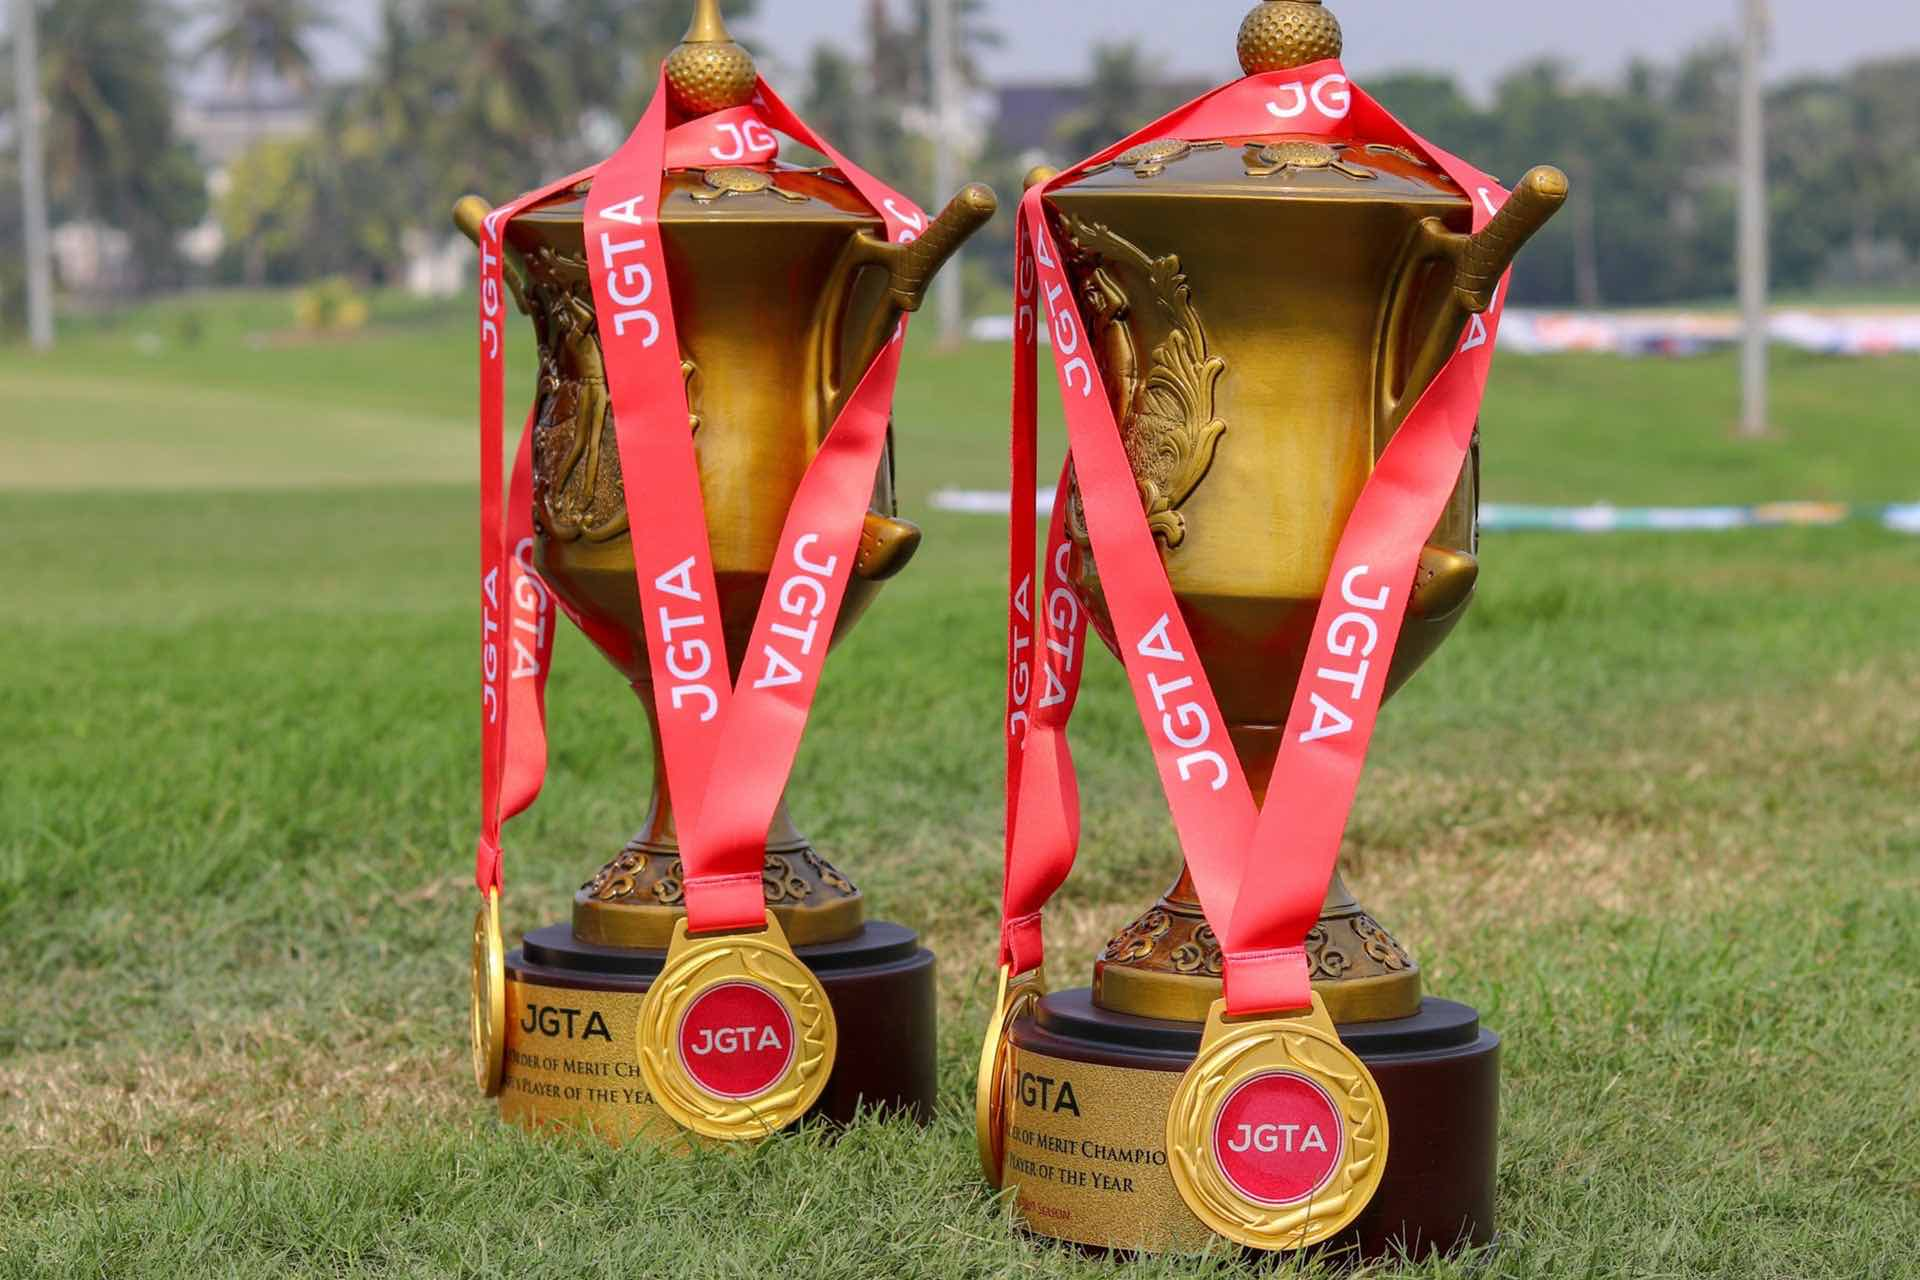 JGTA Awards and Honors - Players of the Year Trophies at #JGTACiputra and Junior All-Asia Team